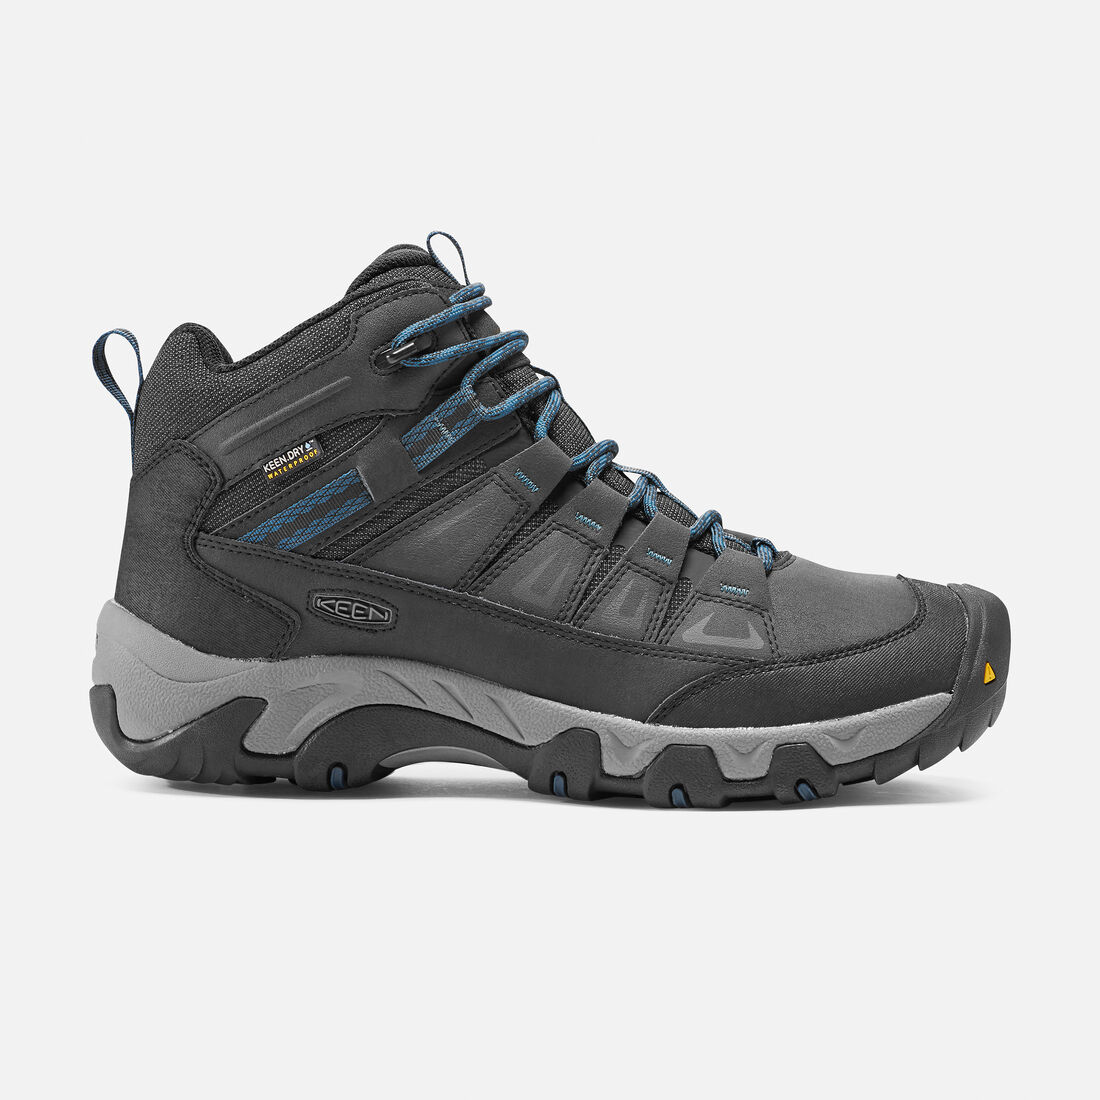 Men's Oakridge Polar Waterproof Boot in Black/Ink Blue - large view.